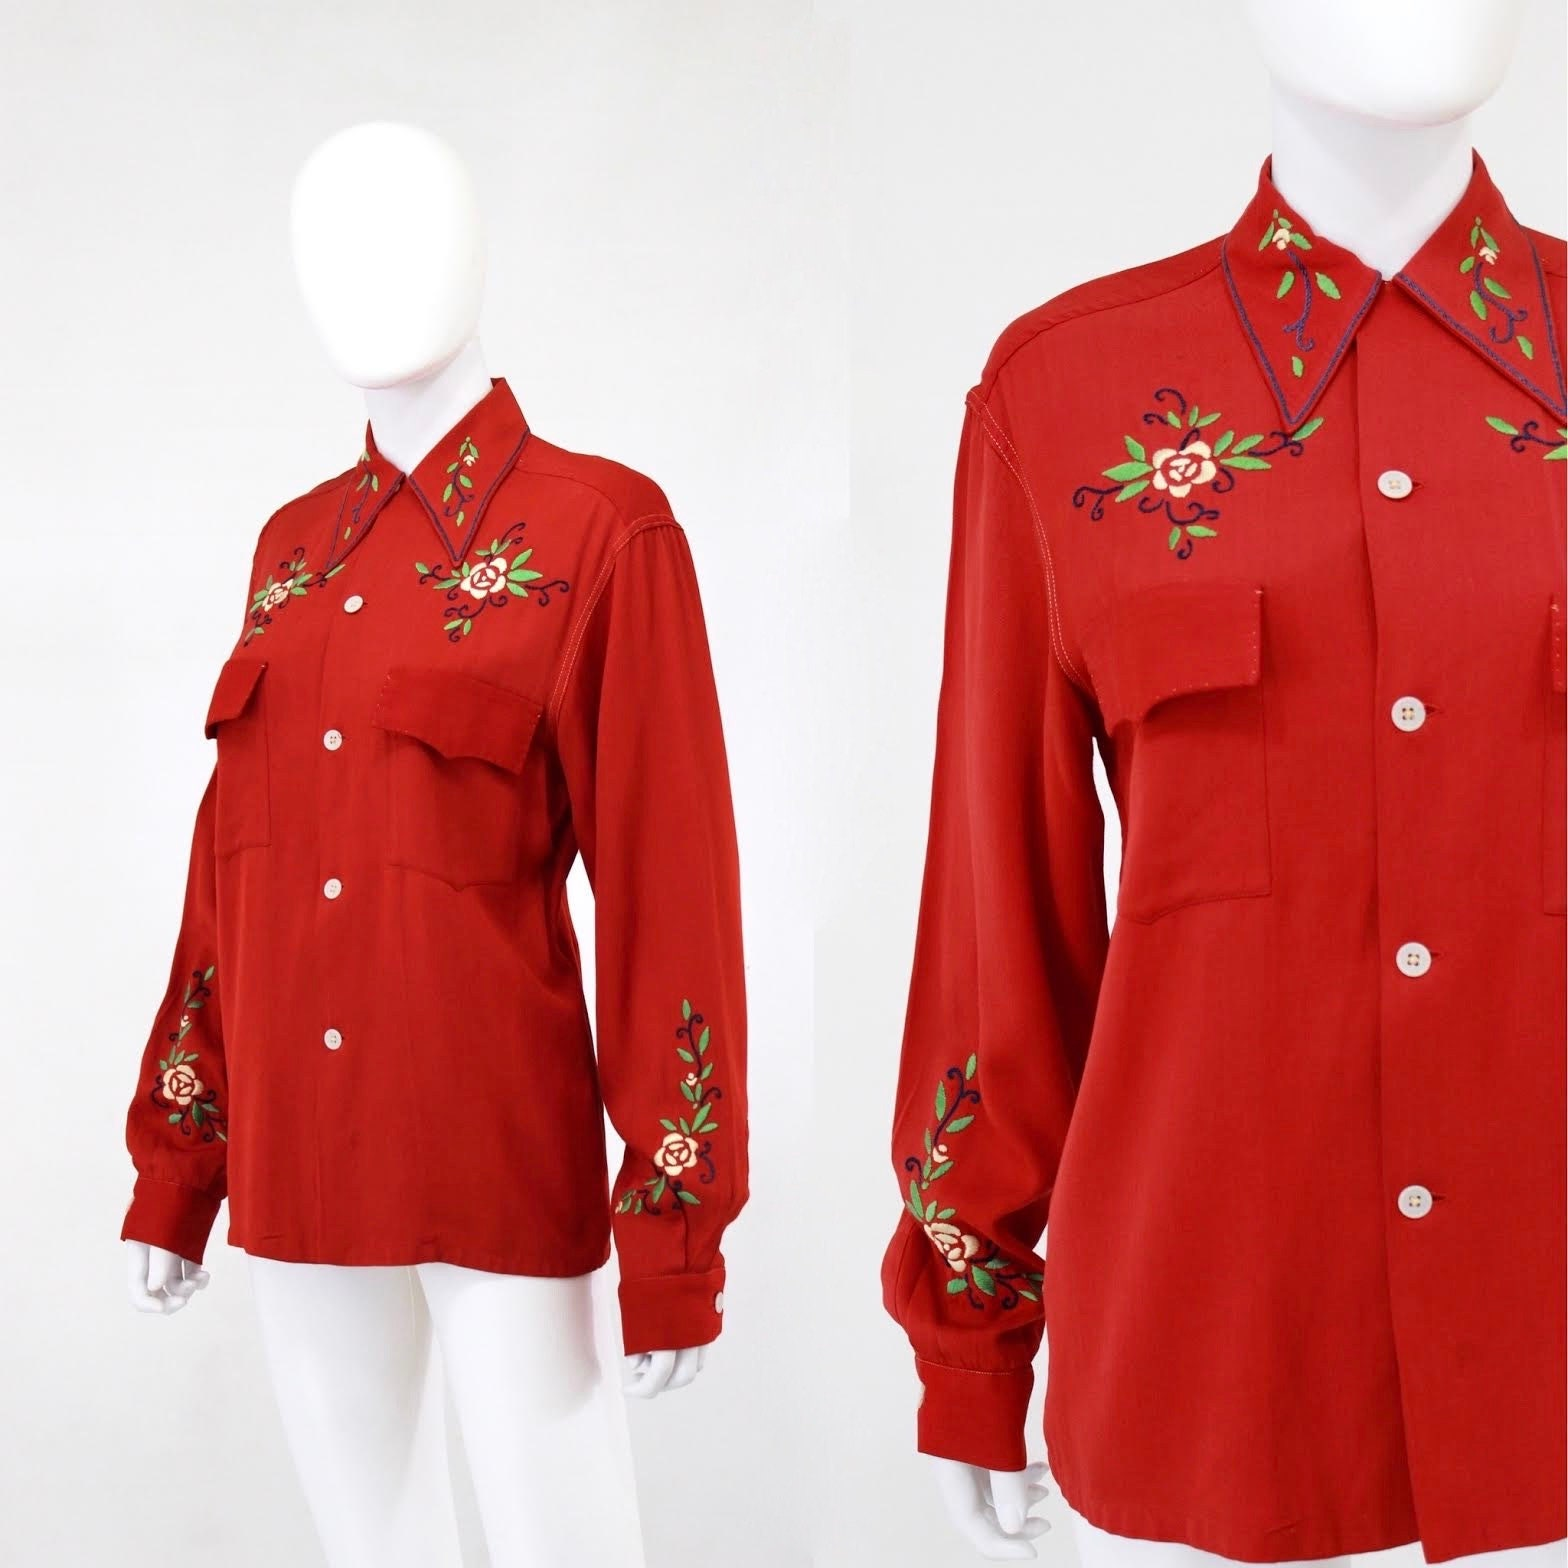 1950s Mens Hats | 50s Vintage Men's Hats 1940S Holiday Red Embroidered Western Blouse - Gabardine Button Down 40S Gab  Size Large WomensMed Mens $30.00 AT vintagedancer.com